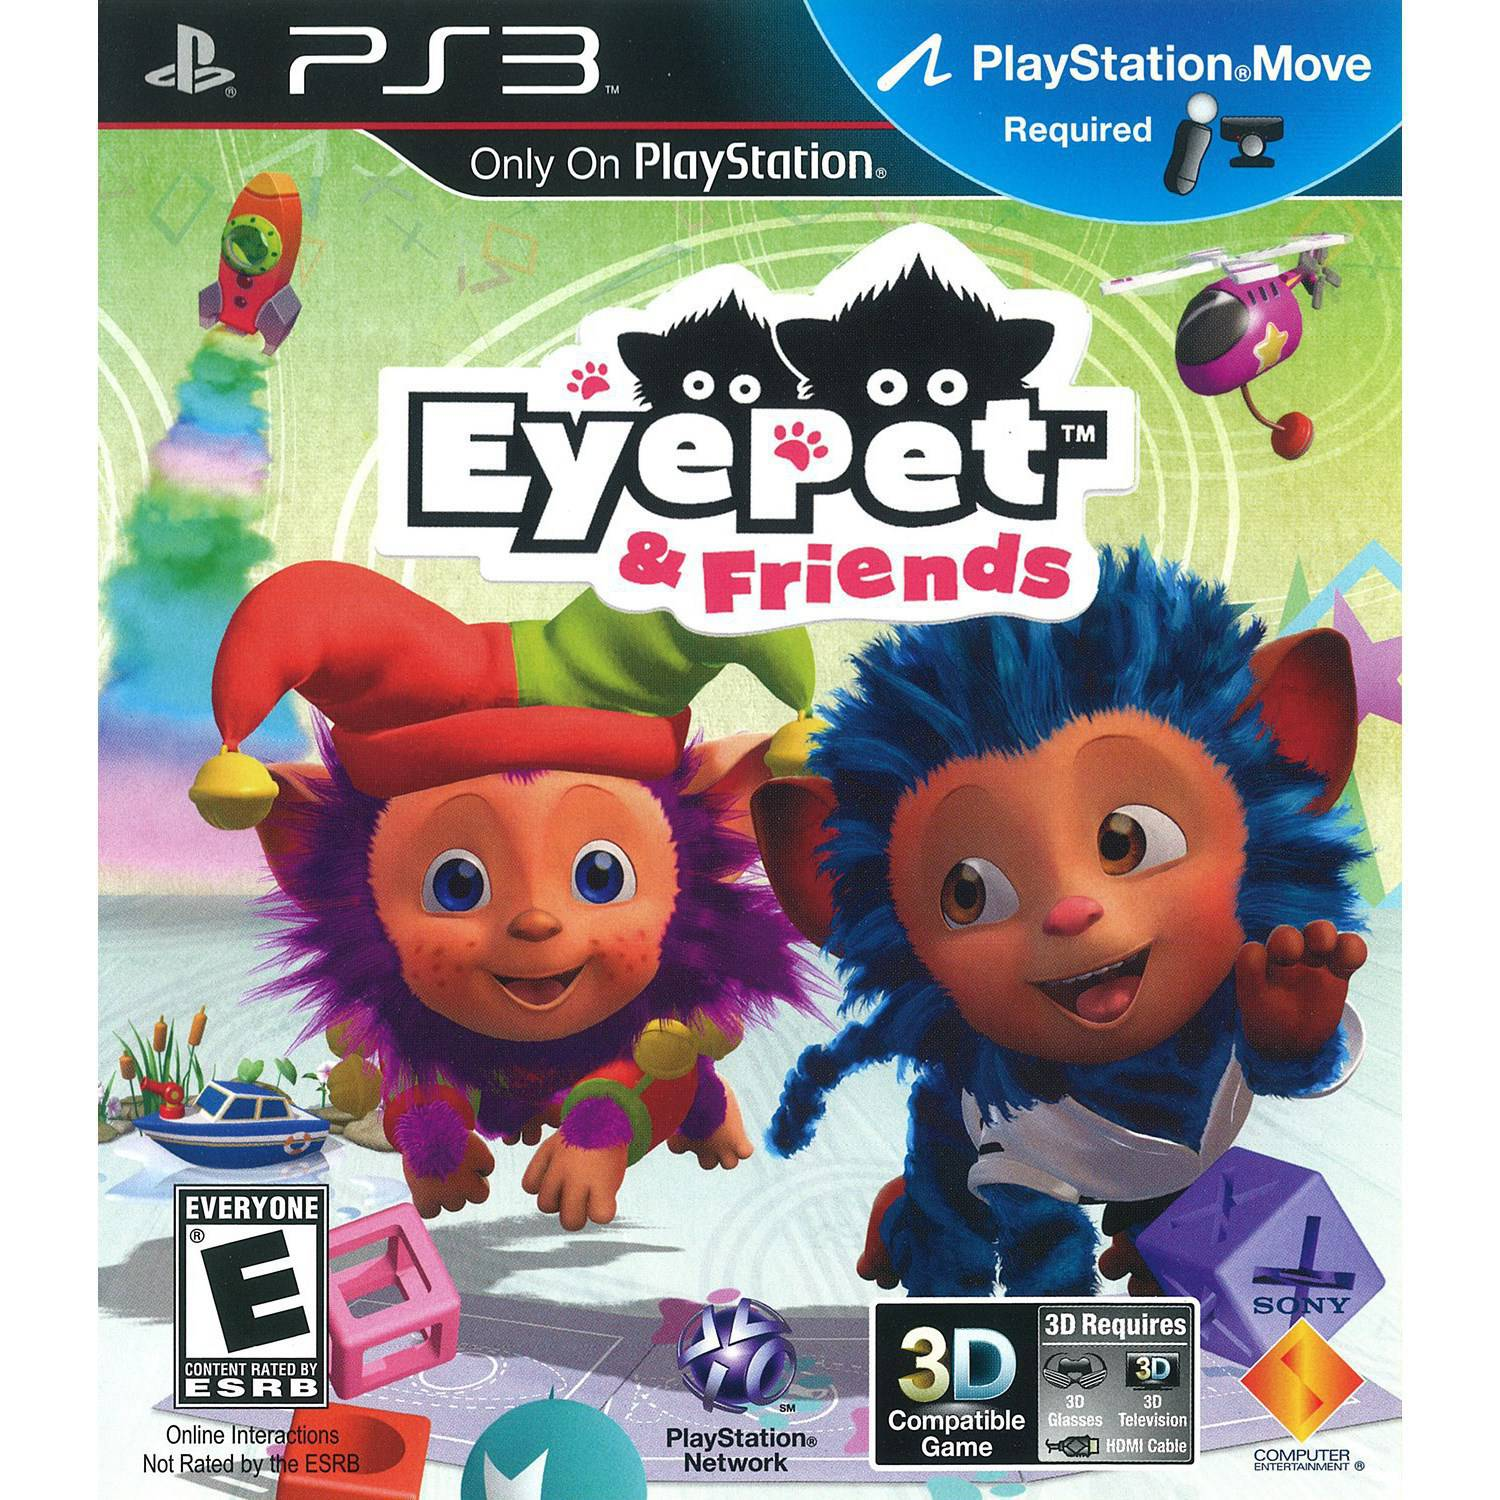 EyePet & Friends (Game Only) (PS3) - Pre-Owned